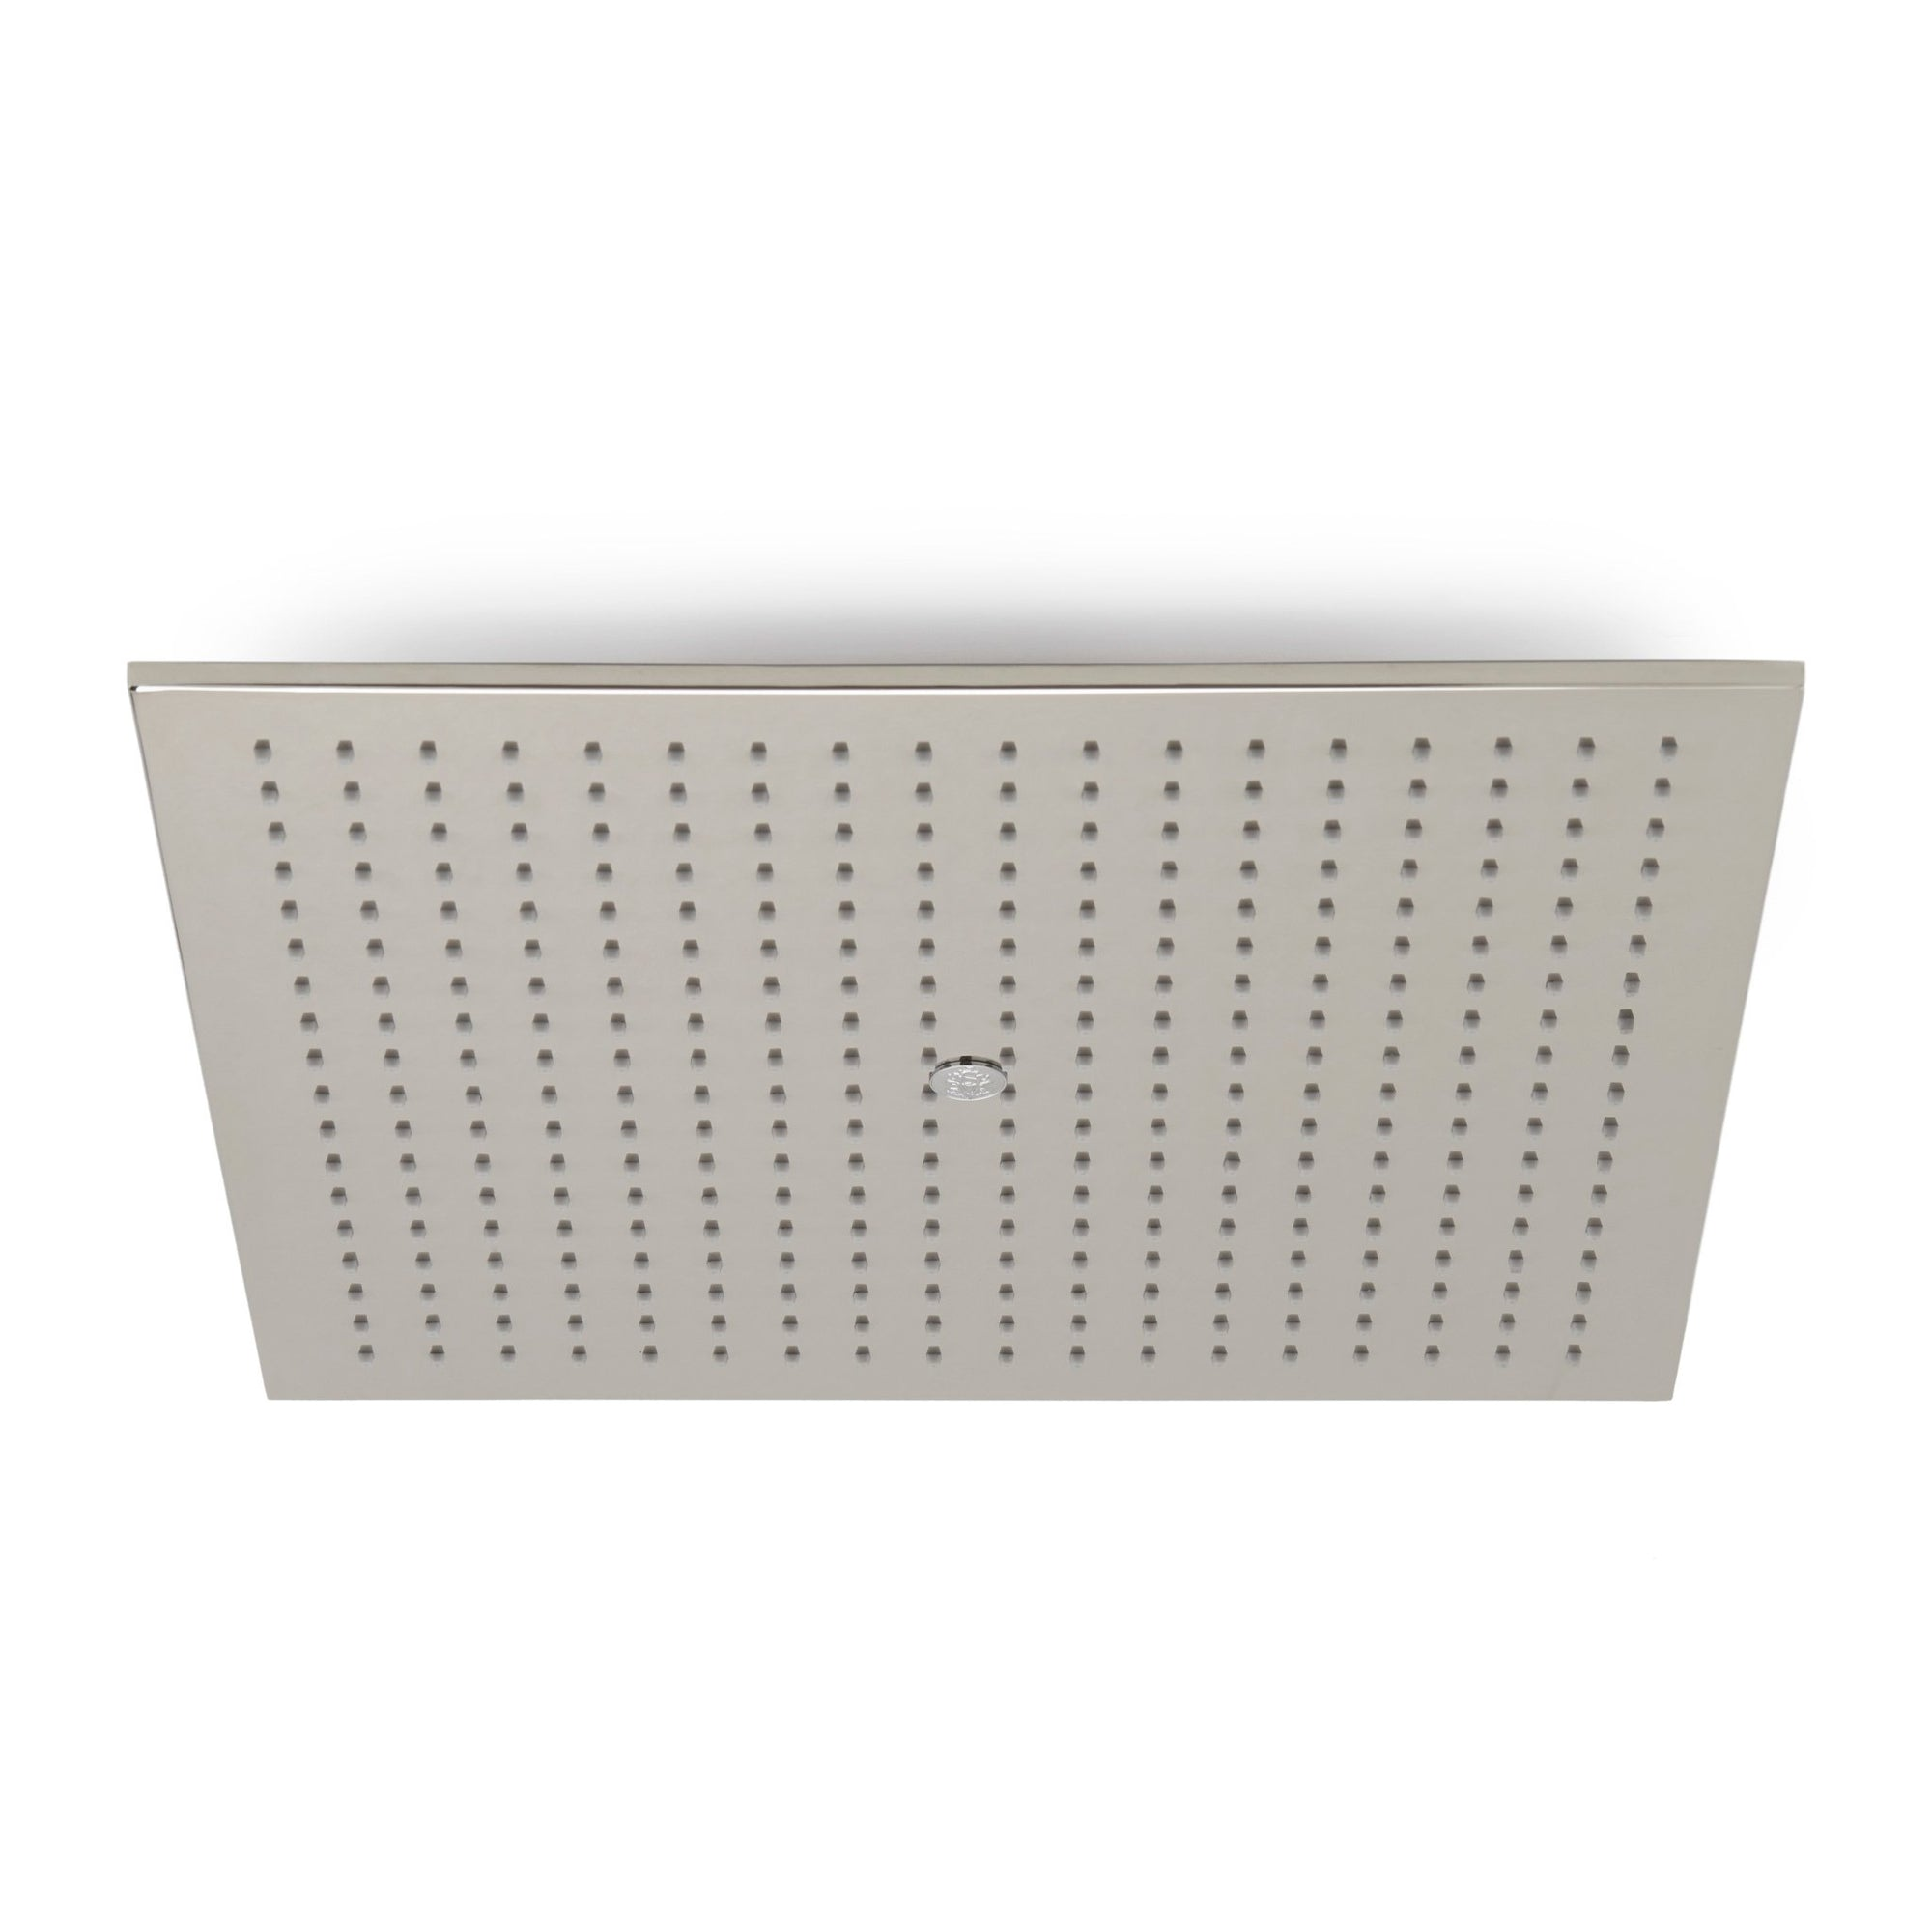 101CSHD-20SQ-PN Sherle Wagner International Modern Square Ceiling Rain Plate in Polished Nickel metal finish